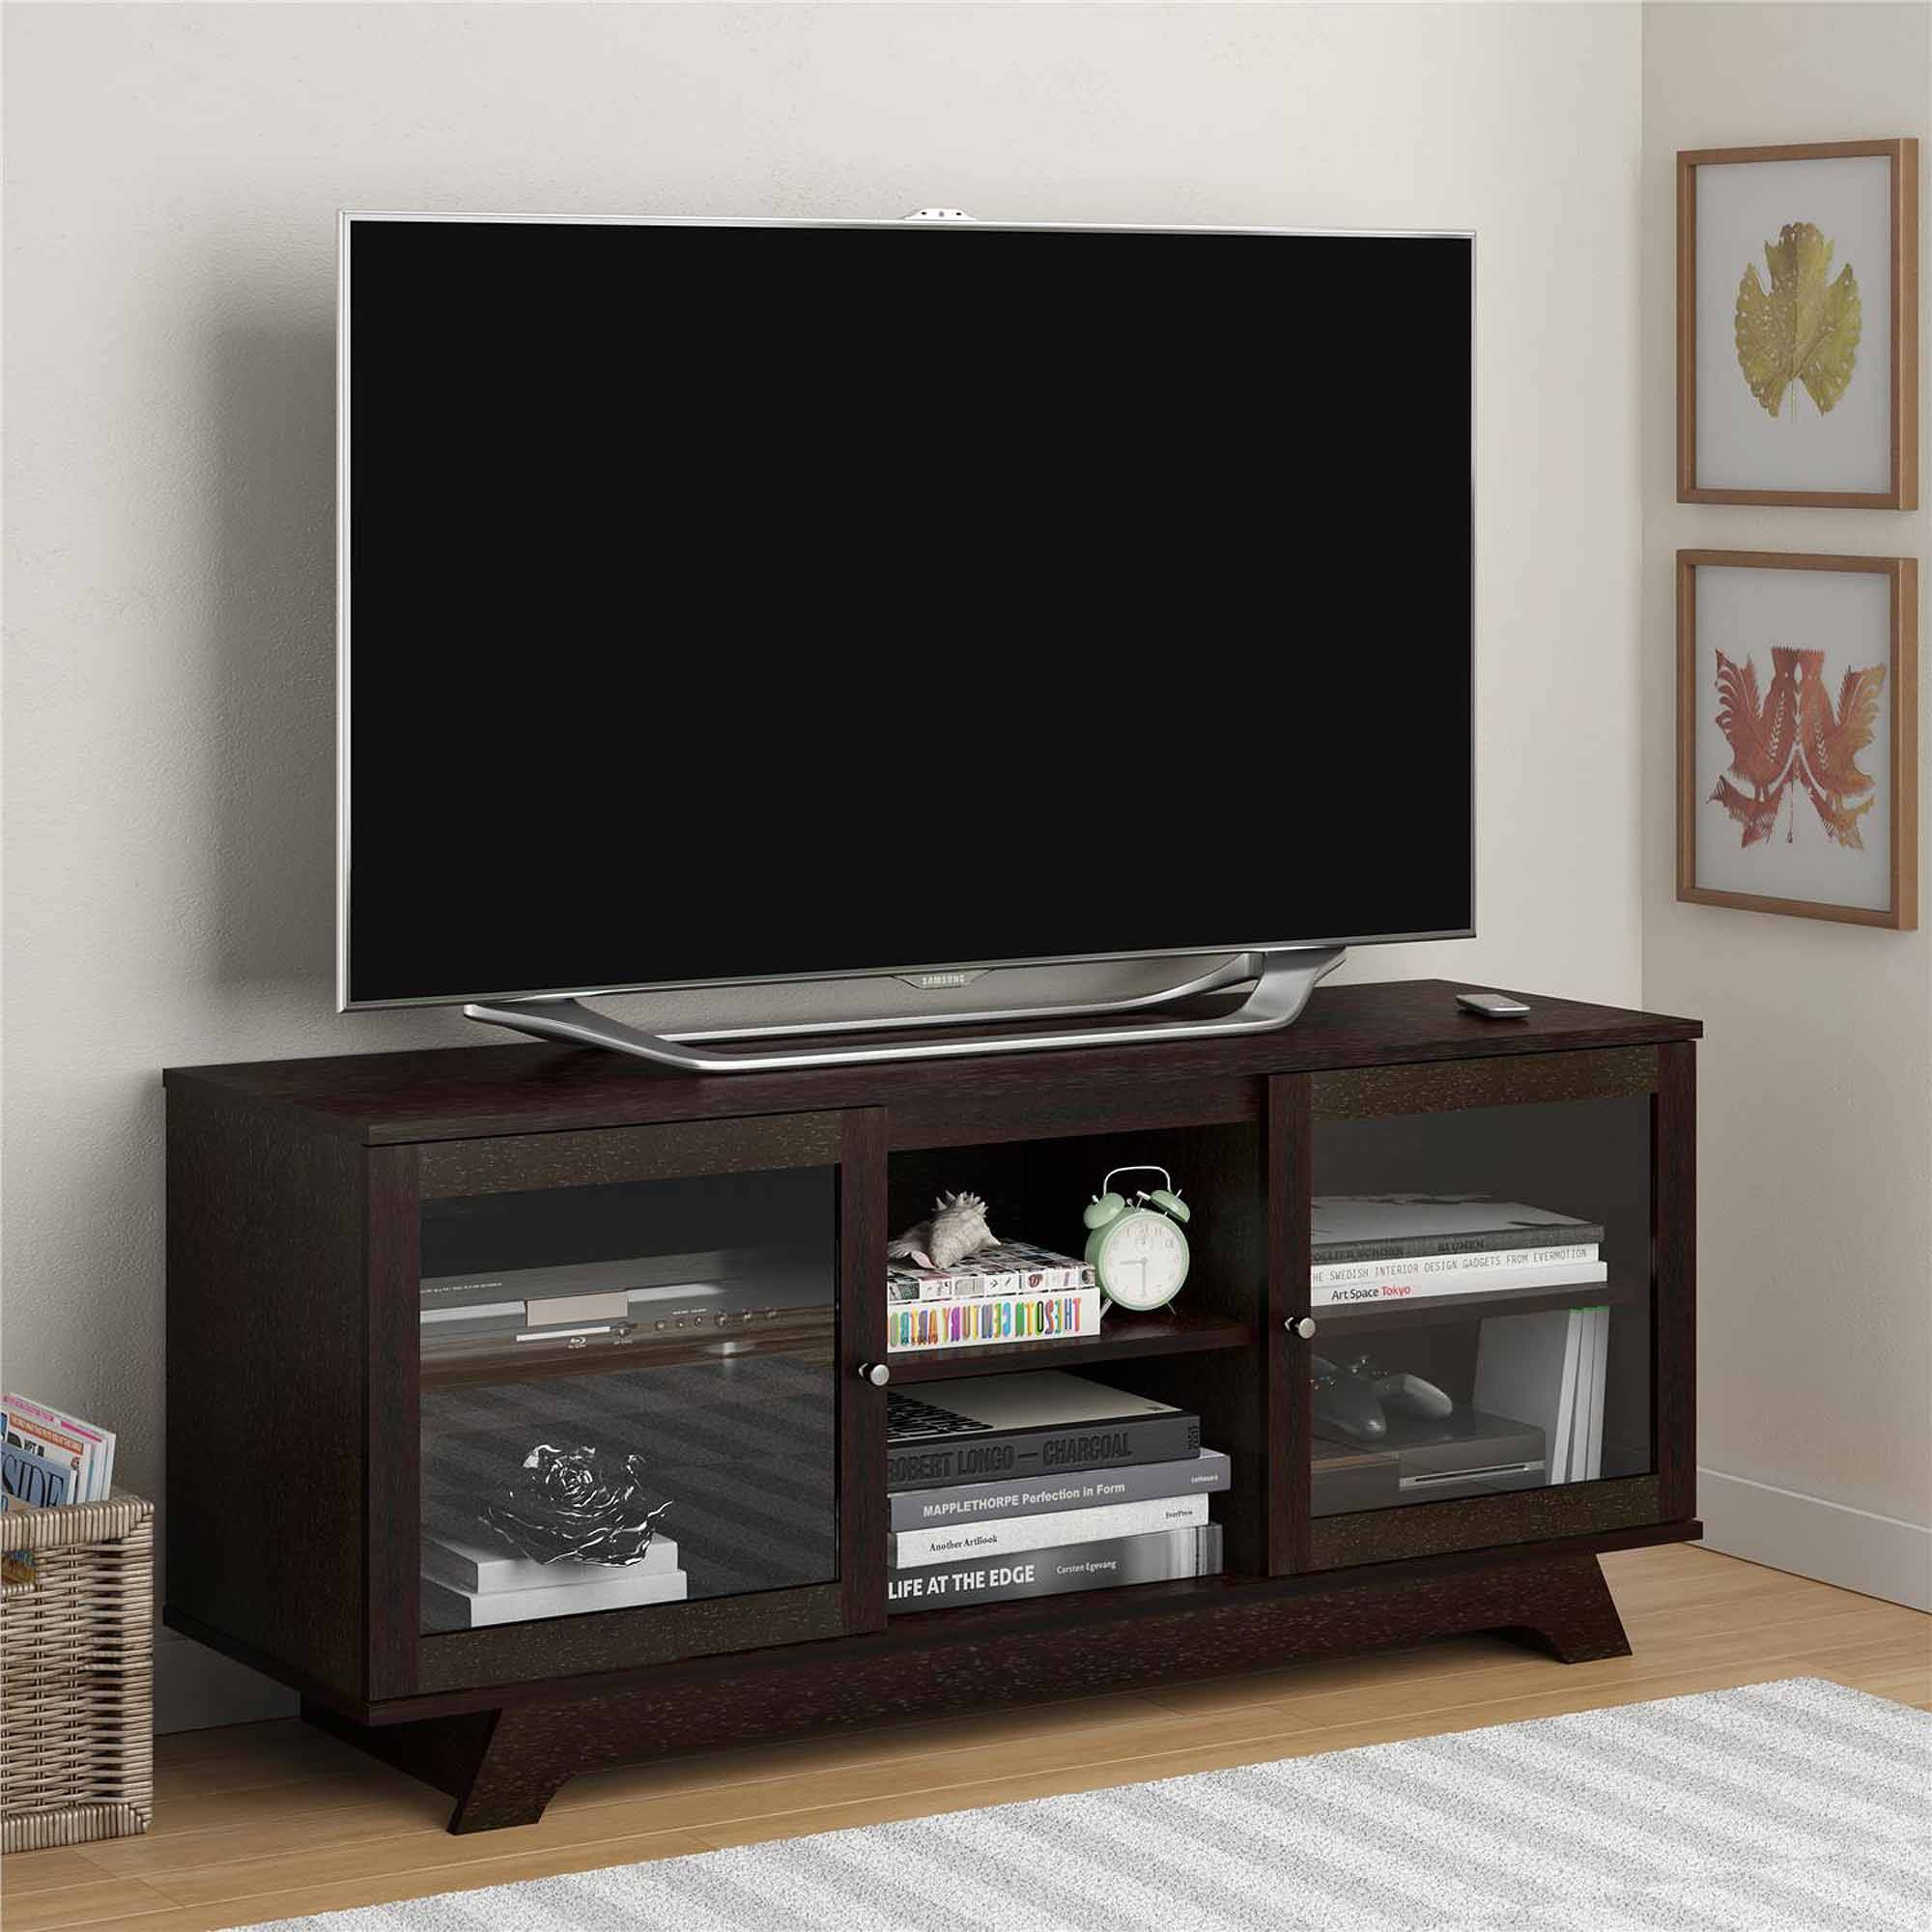 "Sauder Black Tv Stand For Tvs With Bases Up To 39"" - Walmart pertaining to 24 Inch Deep Tv Stands (Image 6 of 15)"